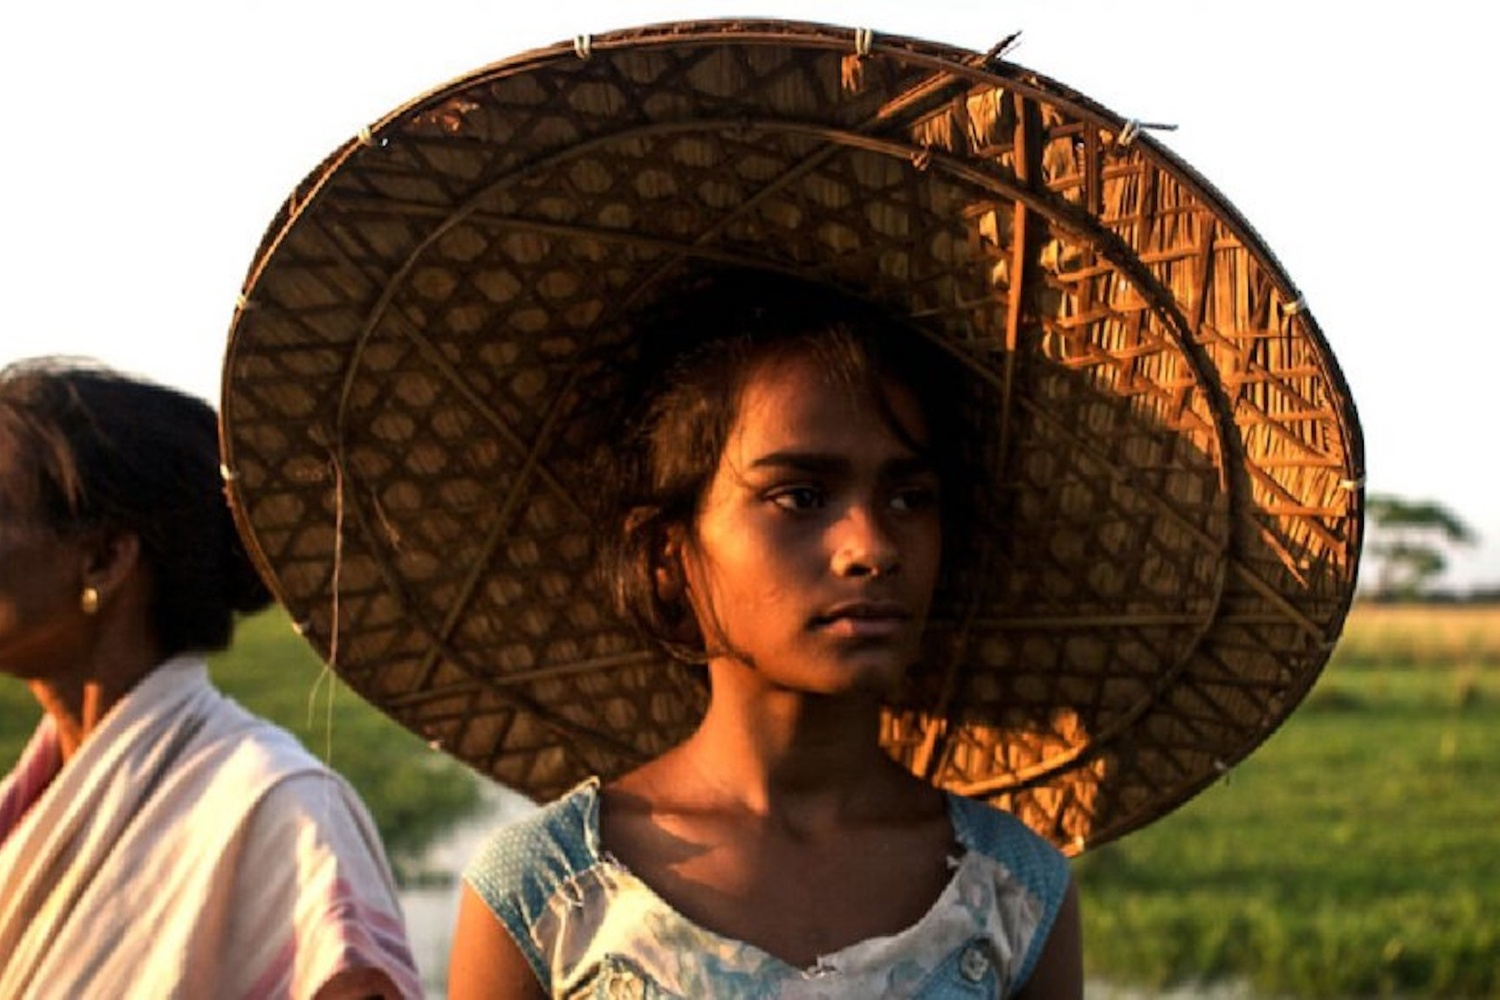 Village Rockstars. 2017. India. Directed by Rima Das